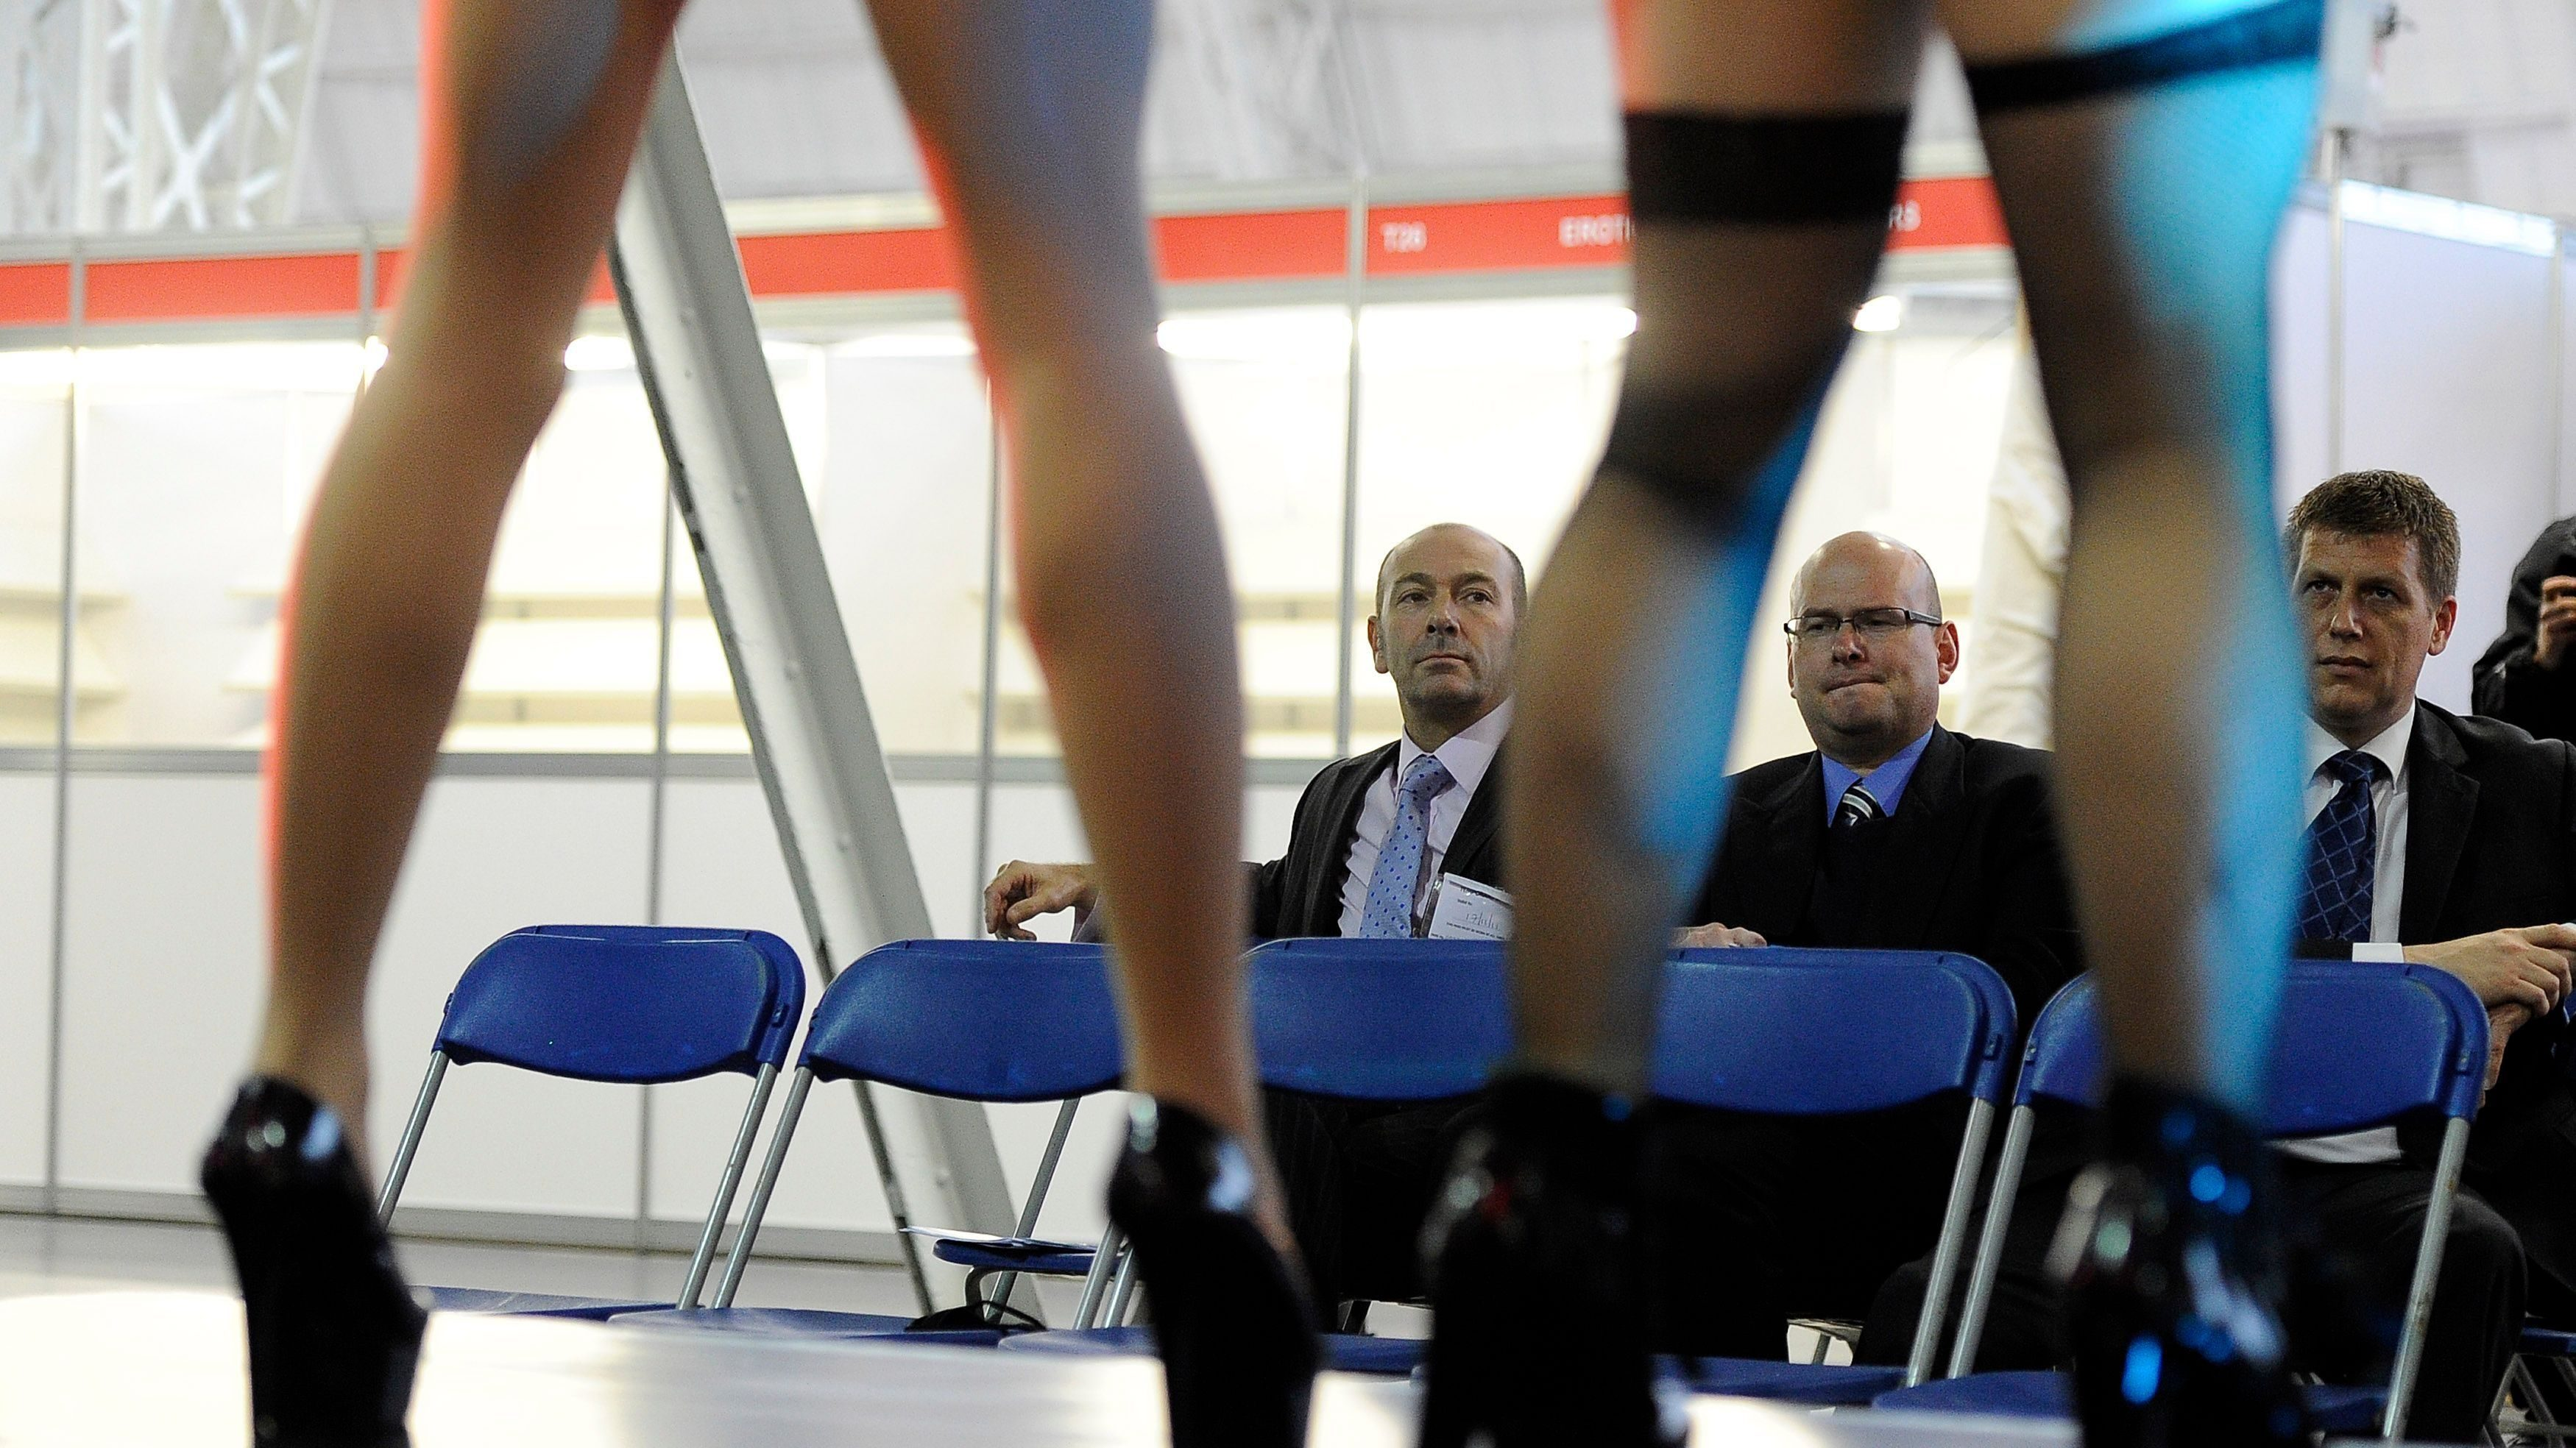 Police and council officials watch to vet dancers before the opening of Erotica 2011, London, November 17. REUTERS/Paul Hackett (SOCIETY ENTERTAINMENT) - LM1E7BH1GDM01